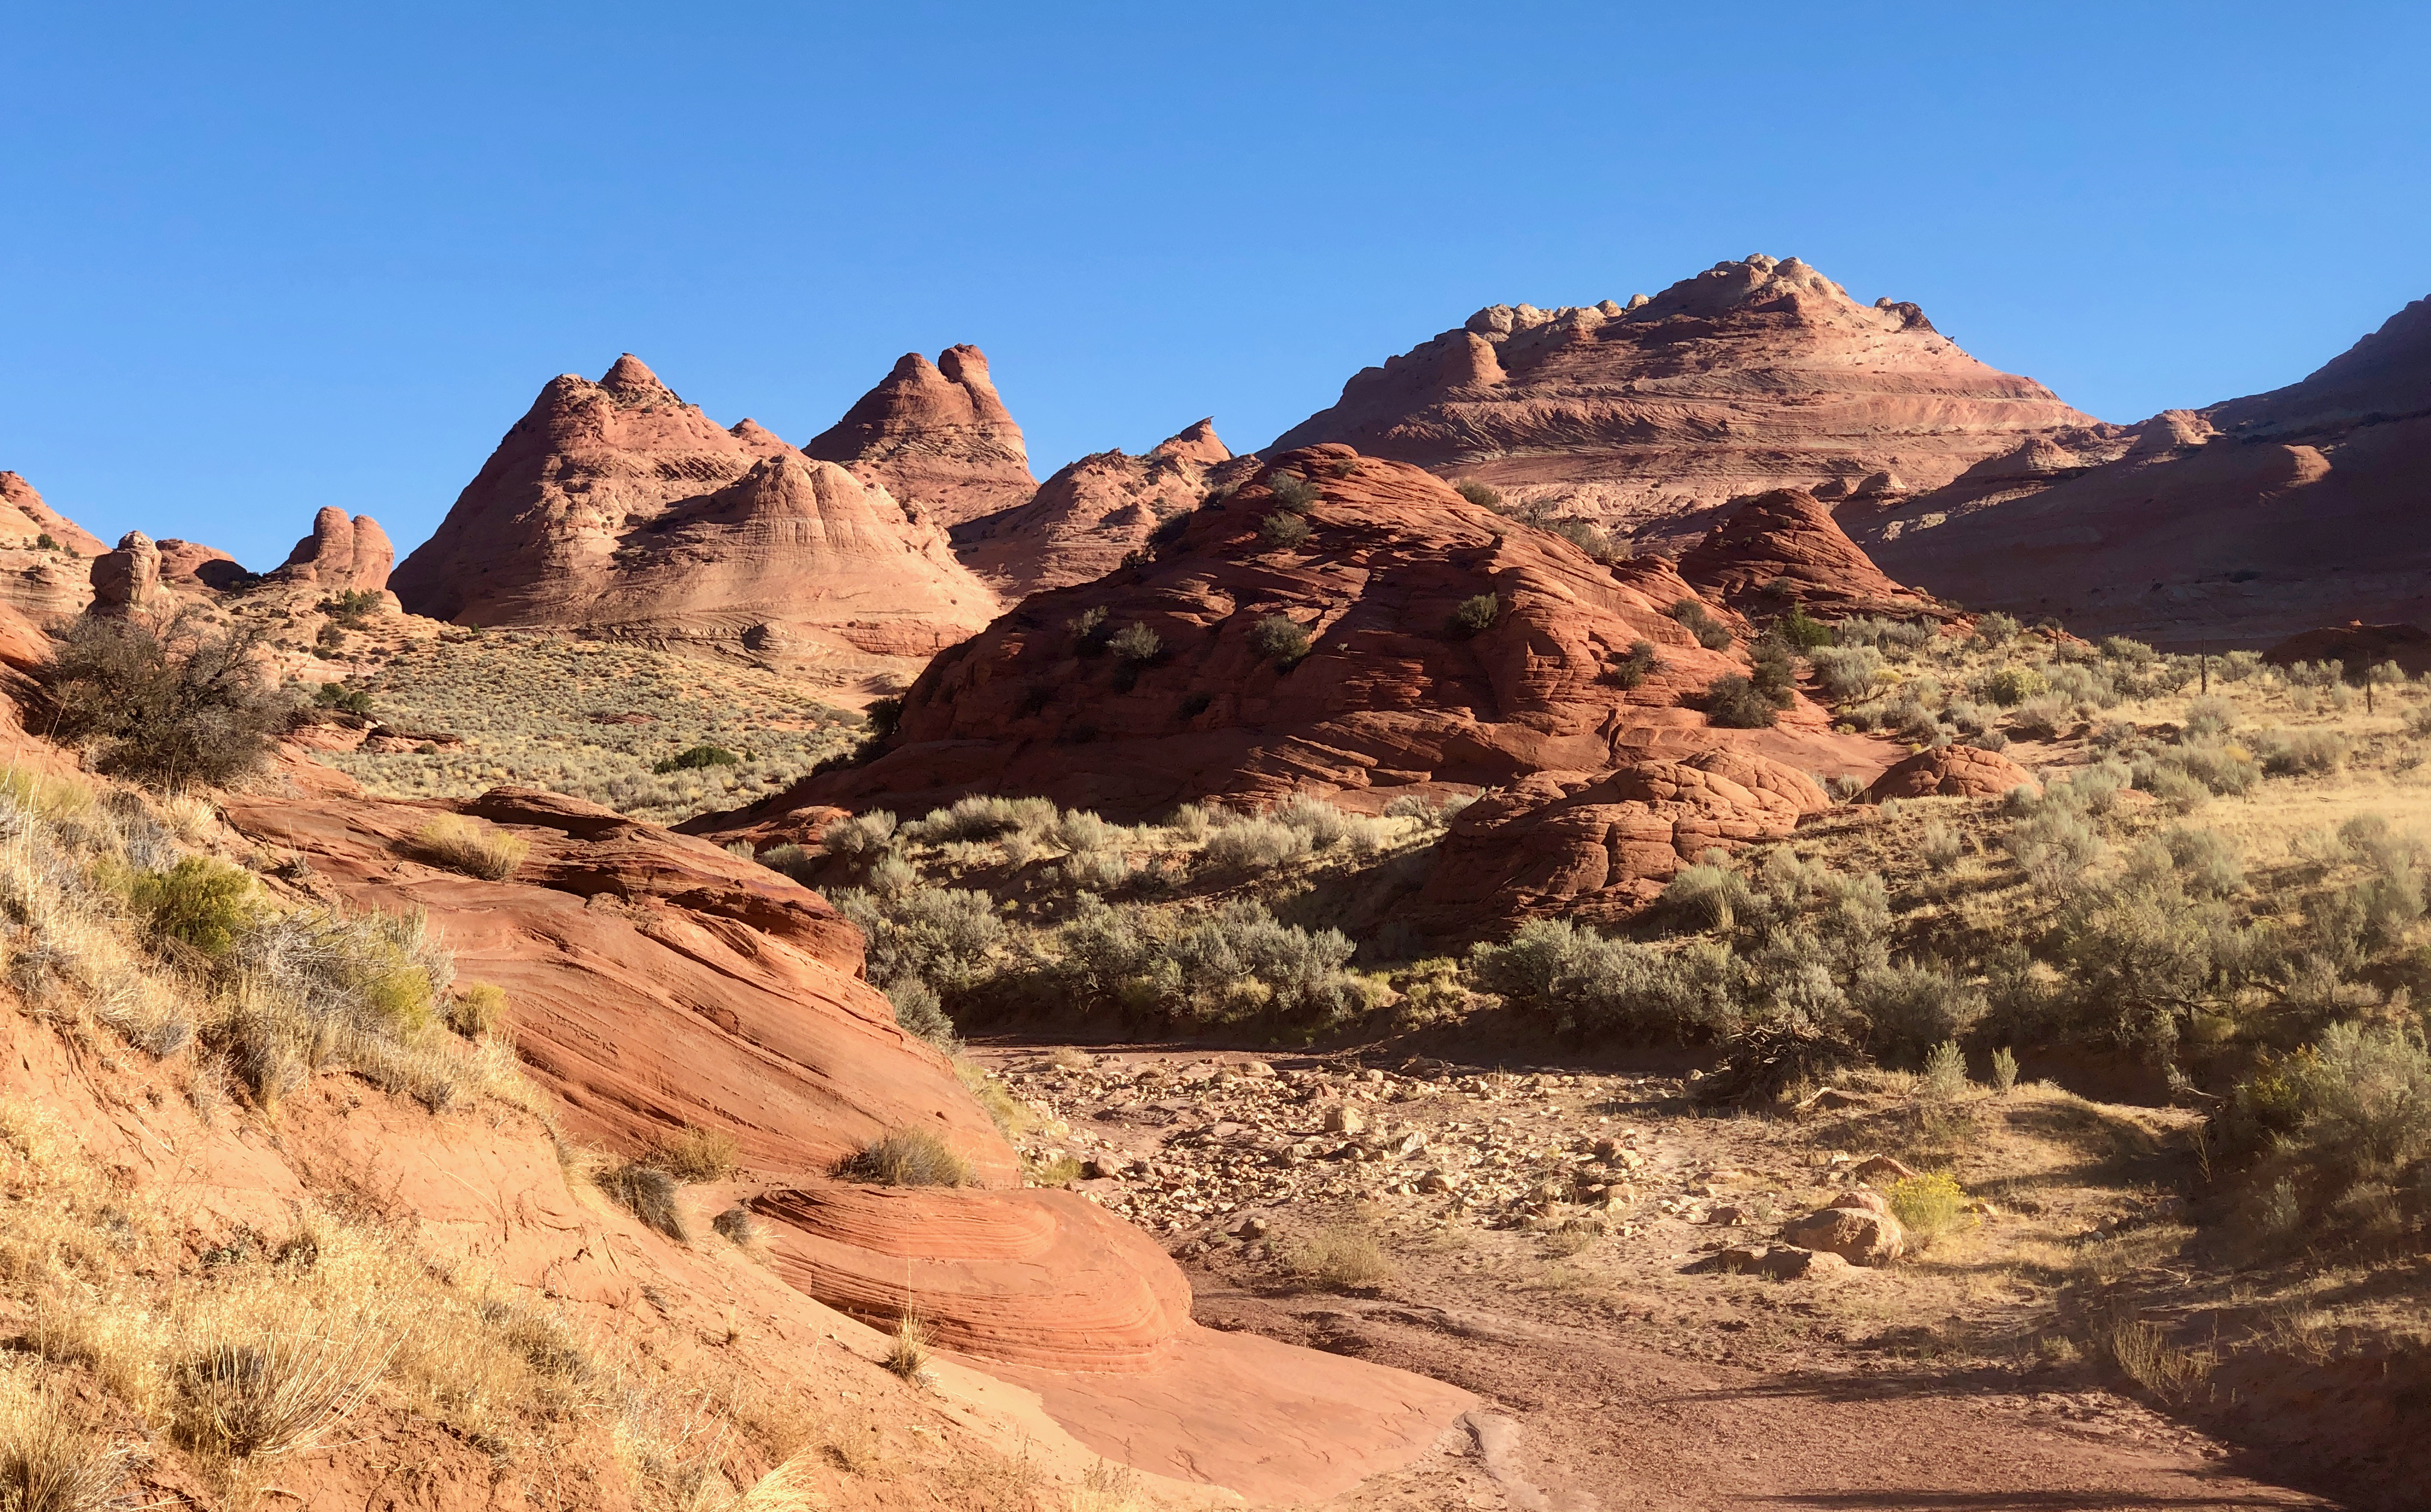 Conical sandstone formations